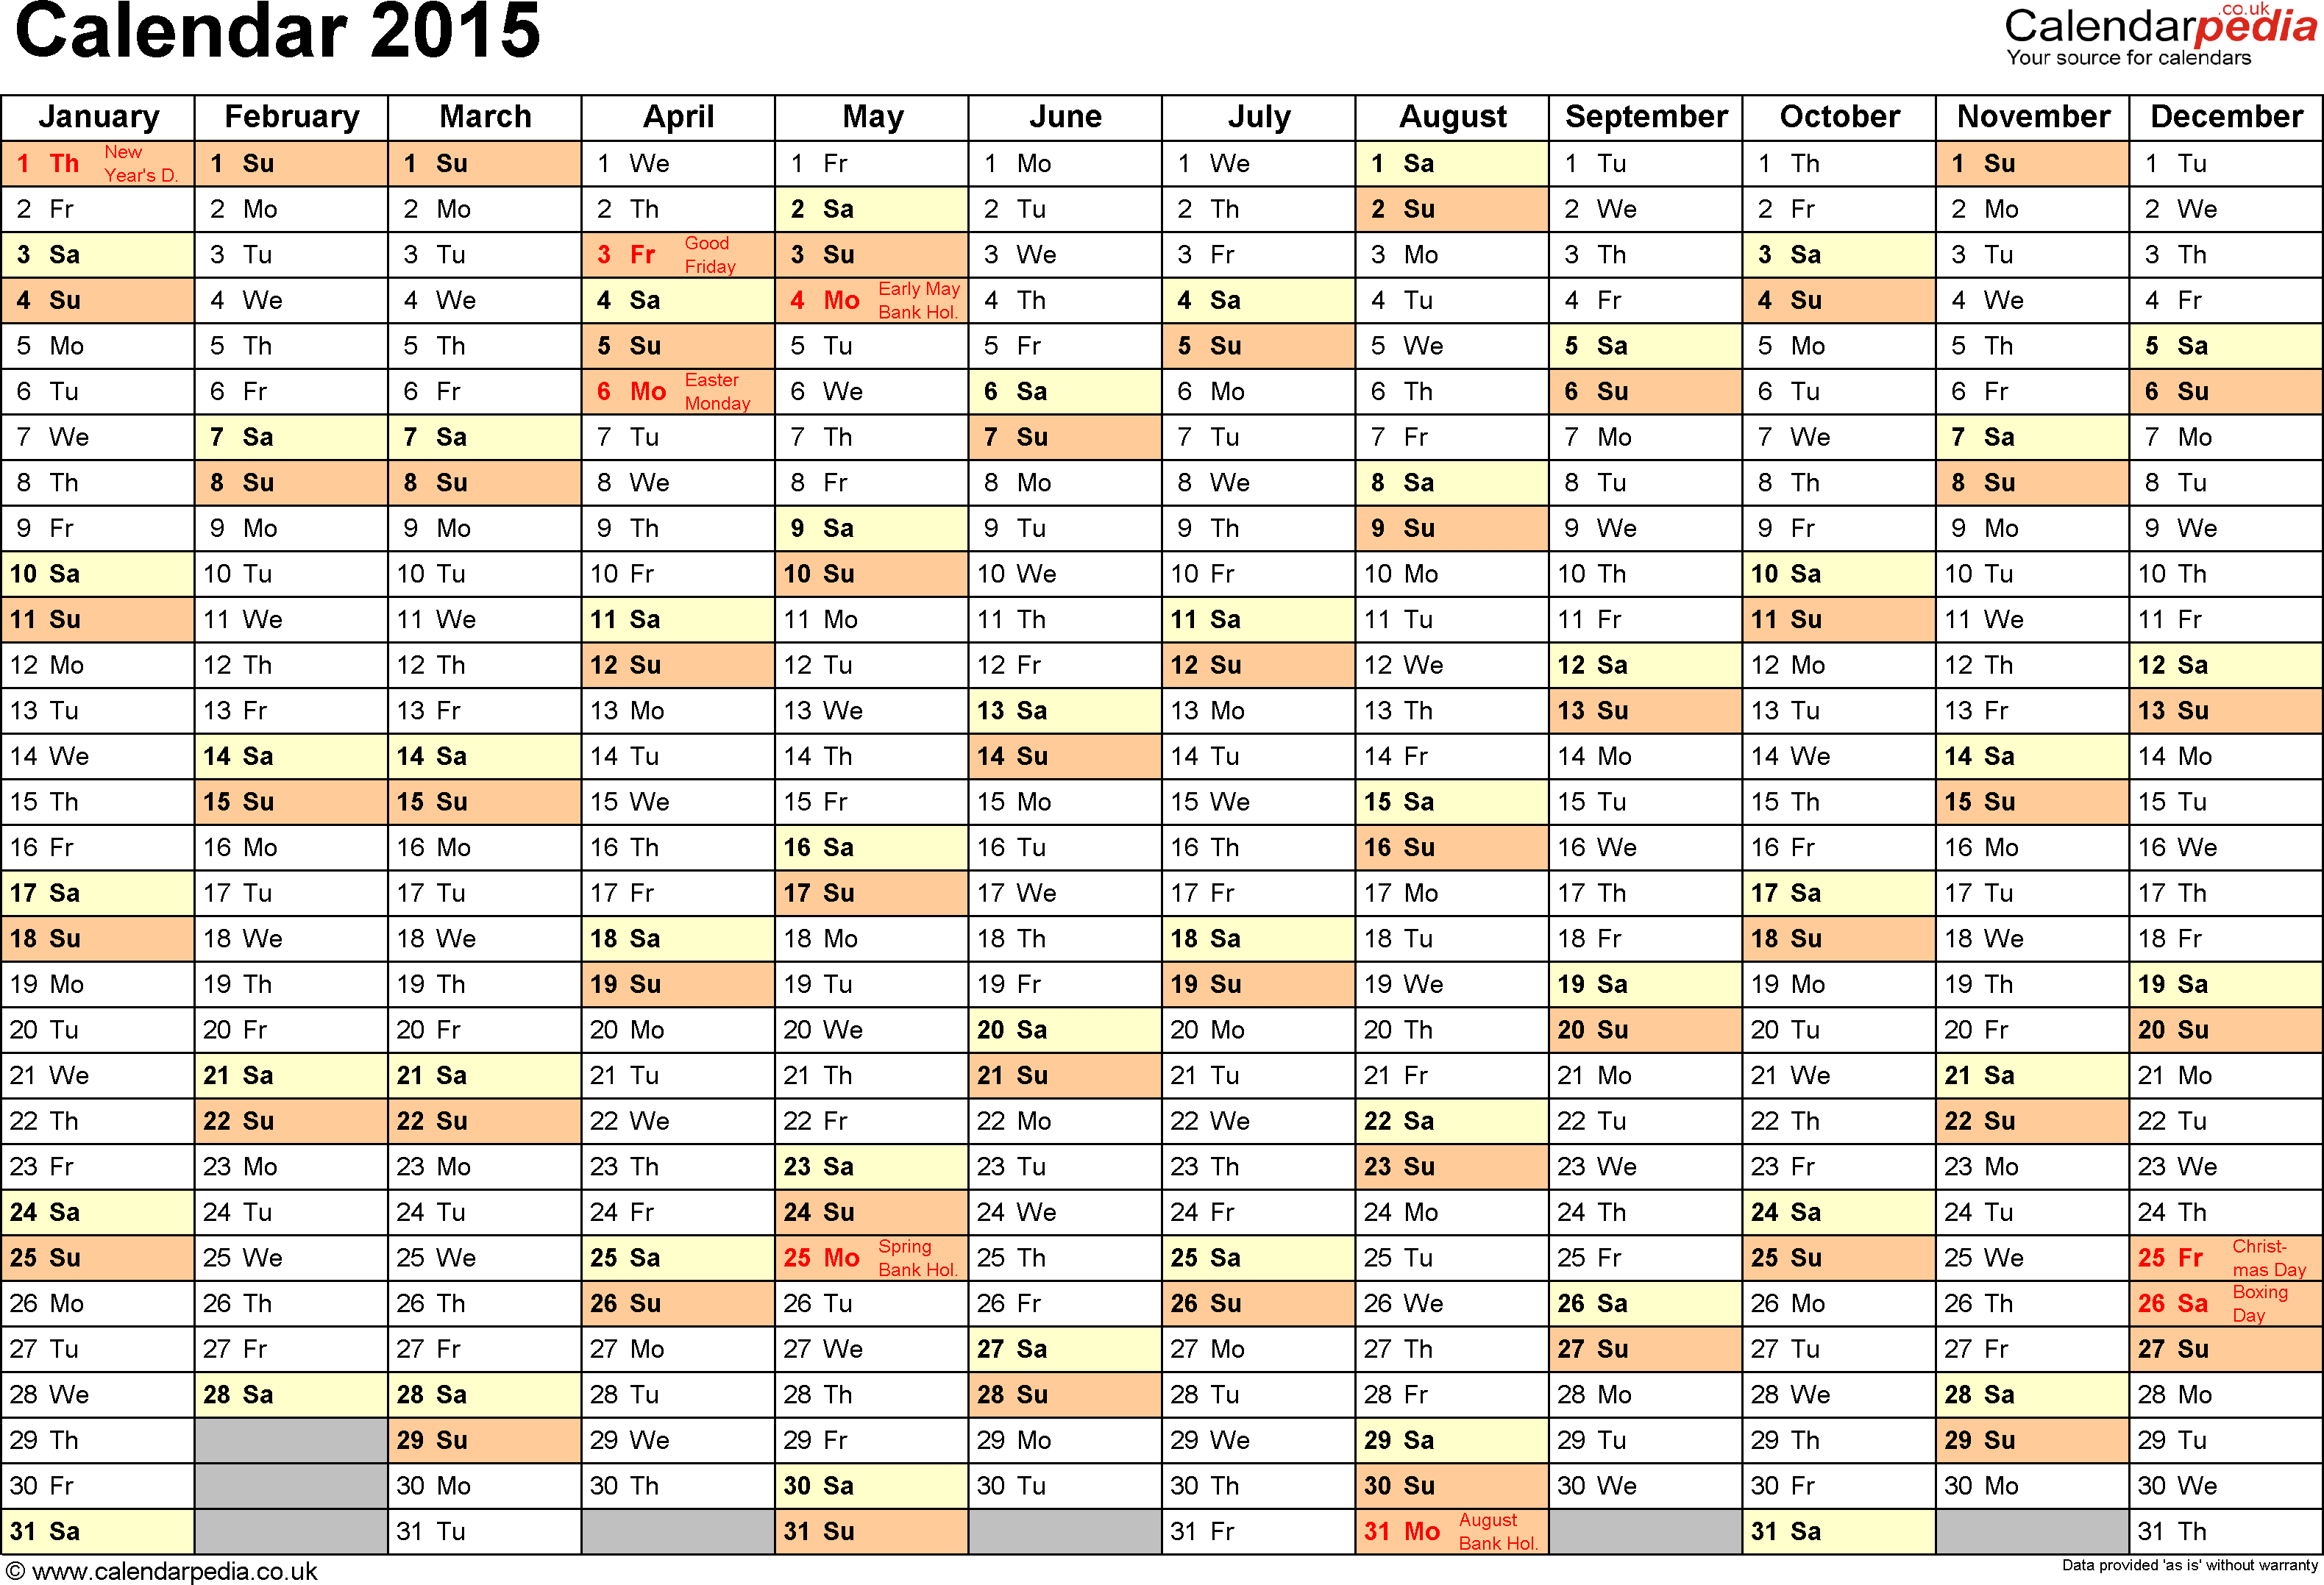 calendar uk bank holidays excel pdf word templates calendar 2015 as png file